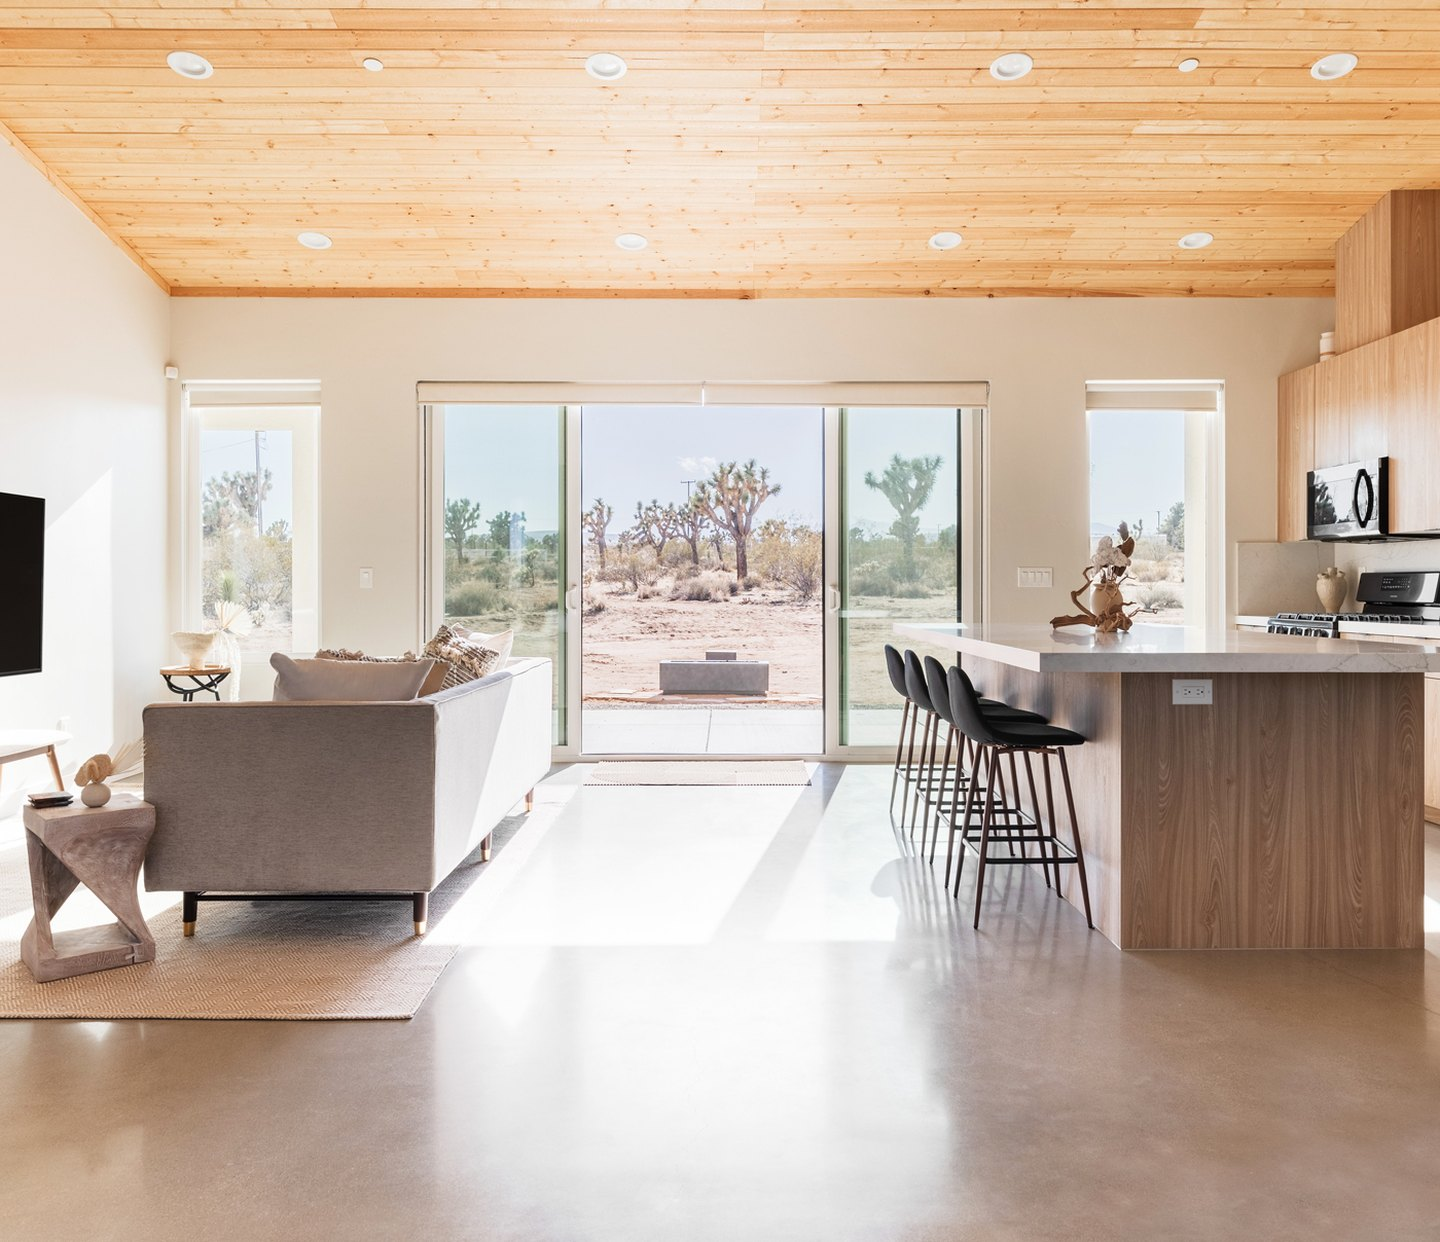 This Tranquil Home Was Built to Fit Right Into Its Desert Setting